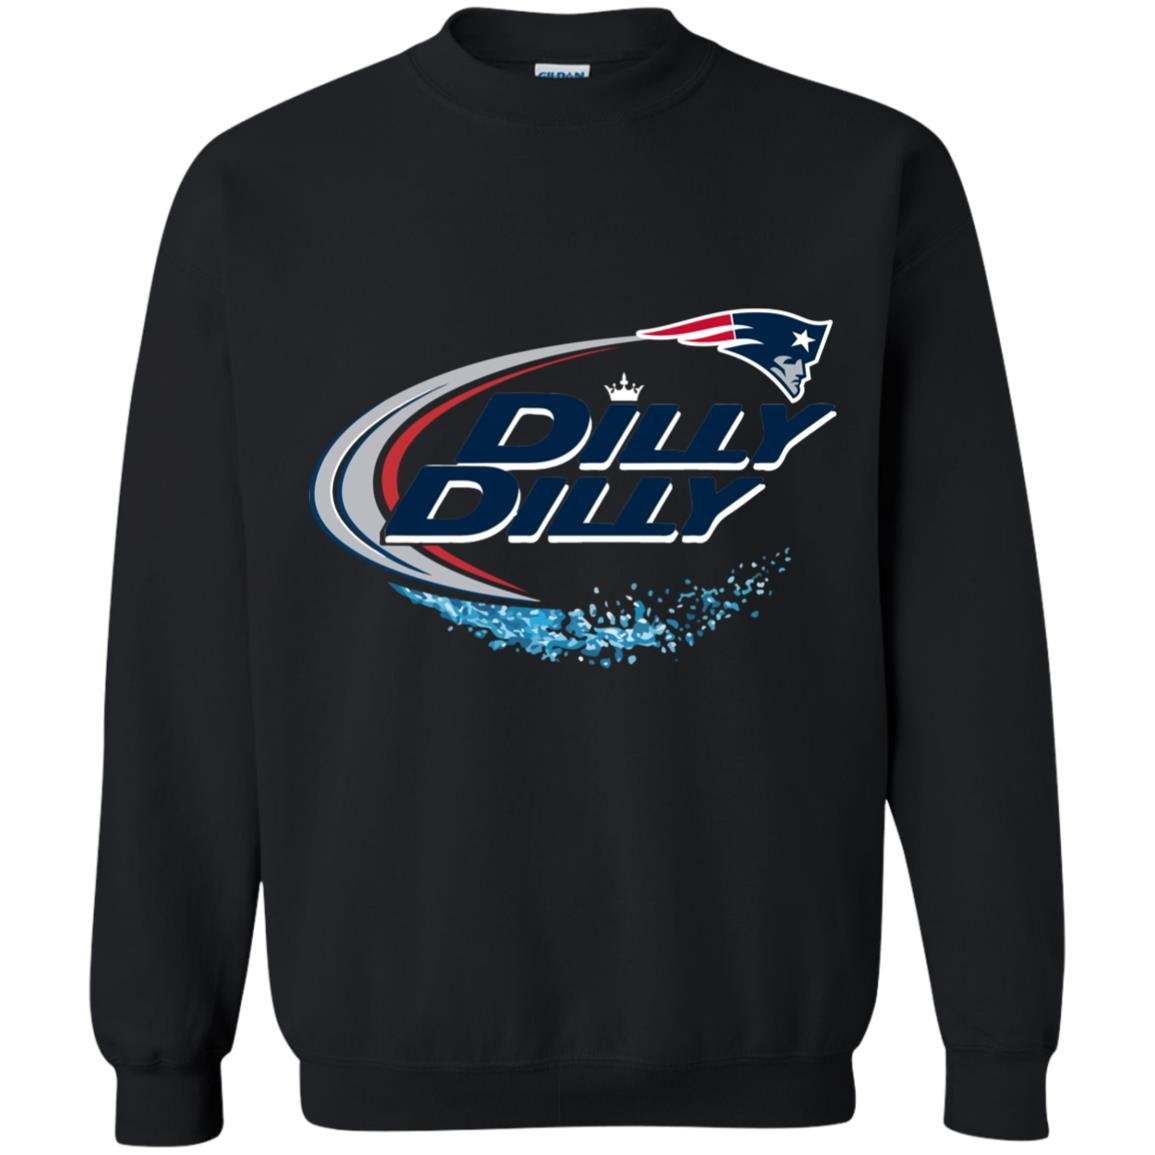 image 1561 - New England Patriots Dilly Dilly  shirt, sweatshirt, hoodie